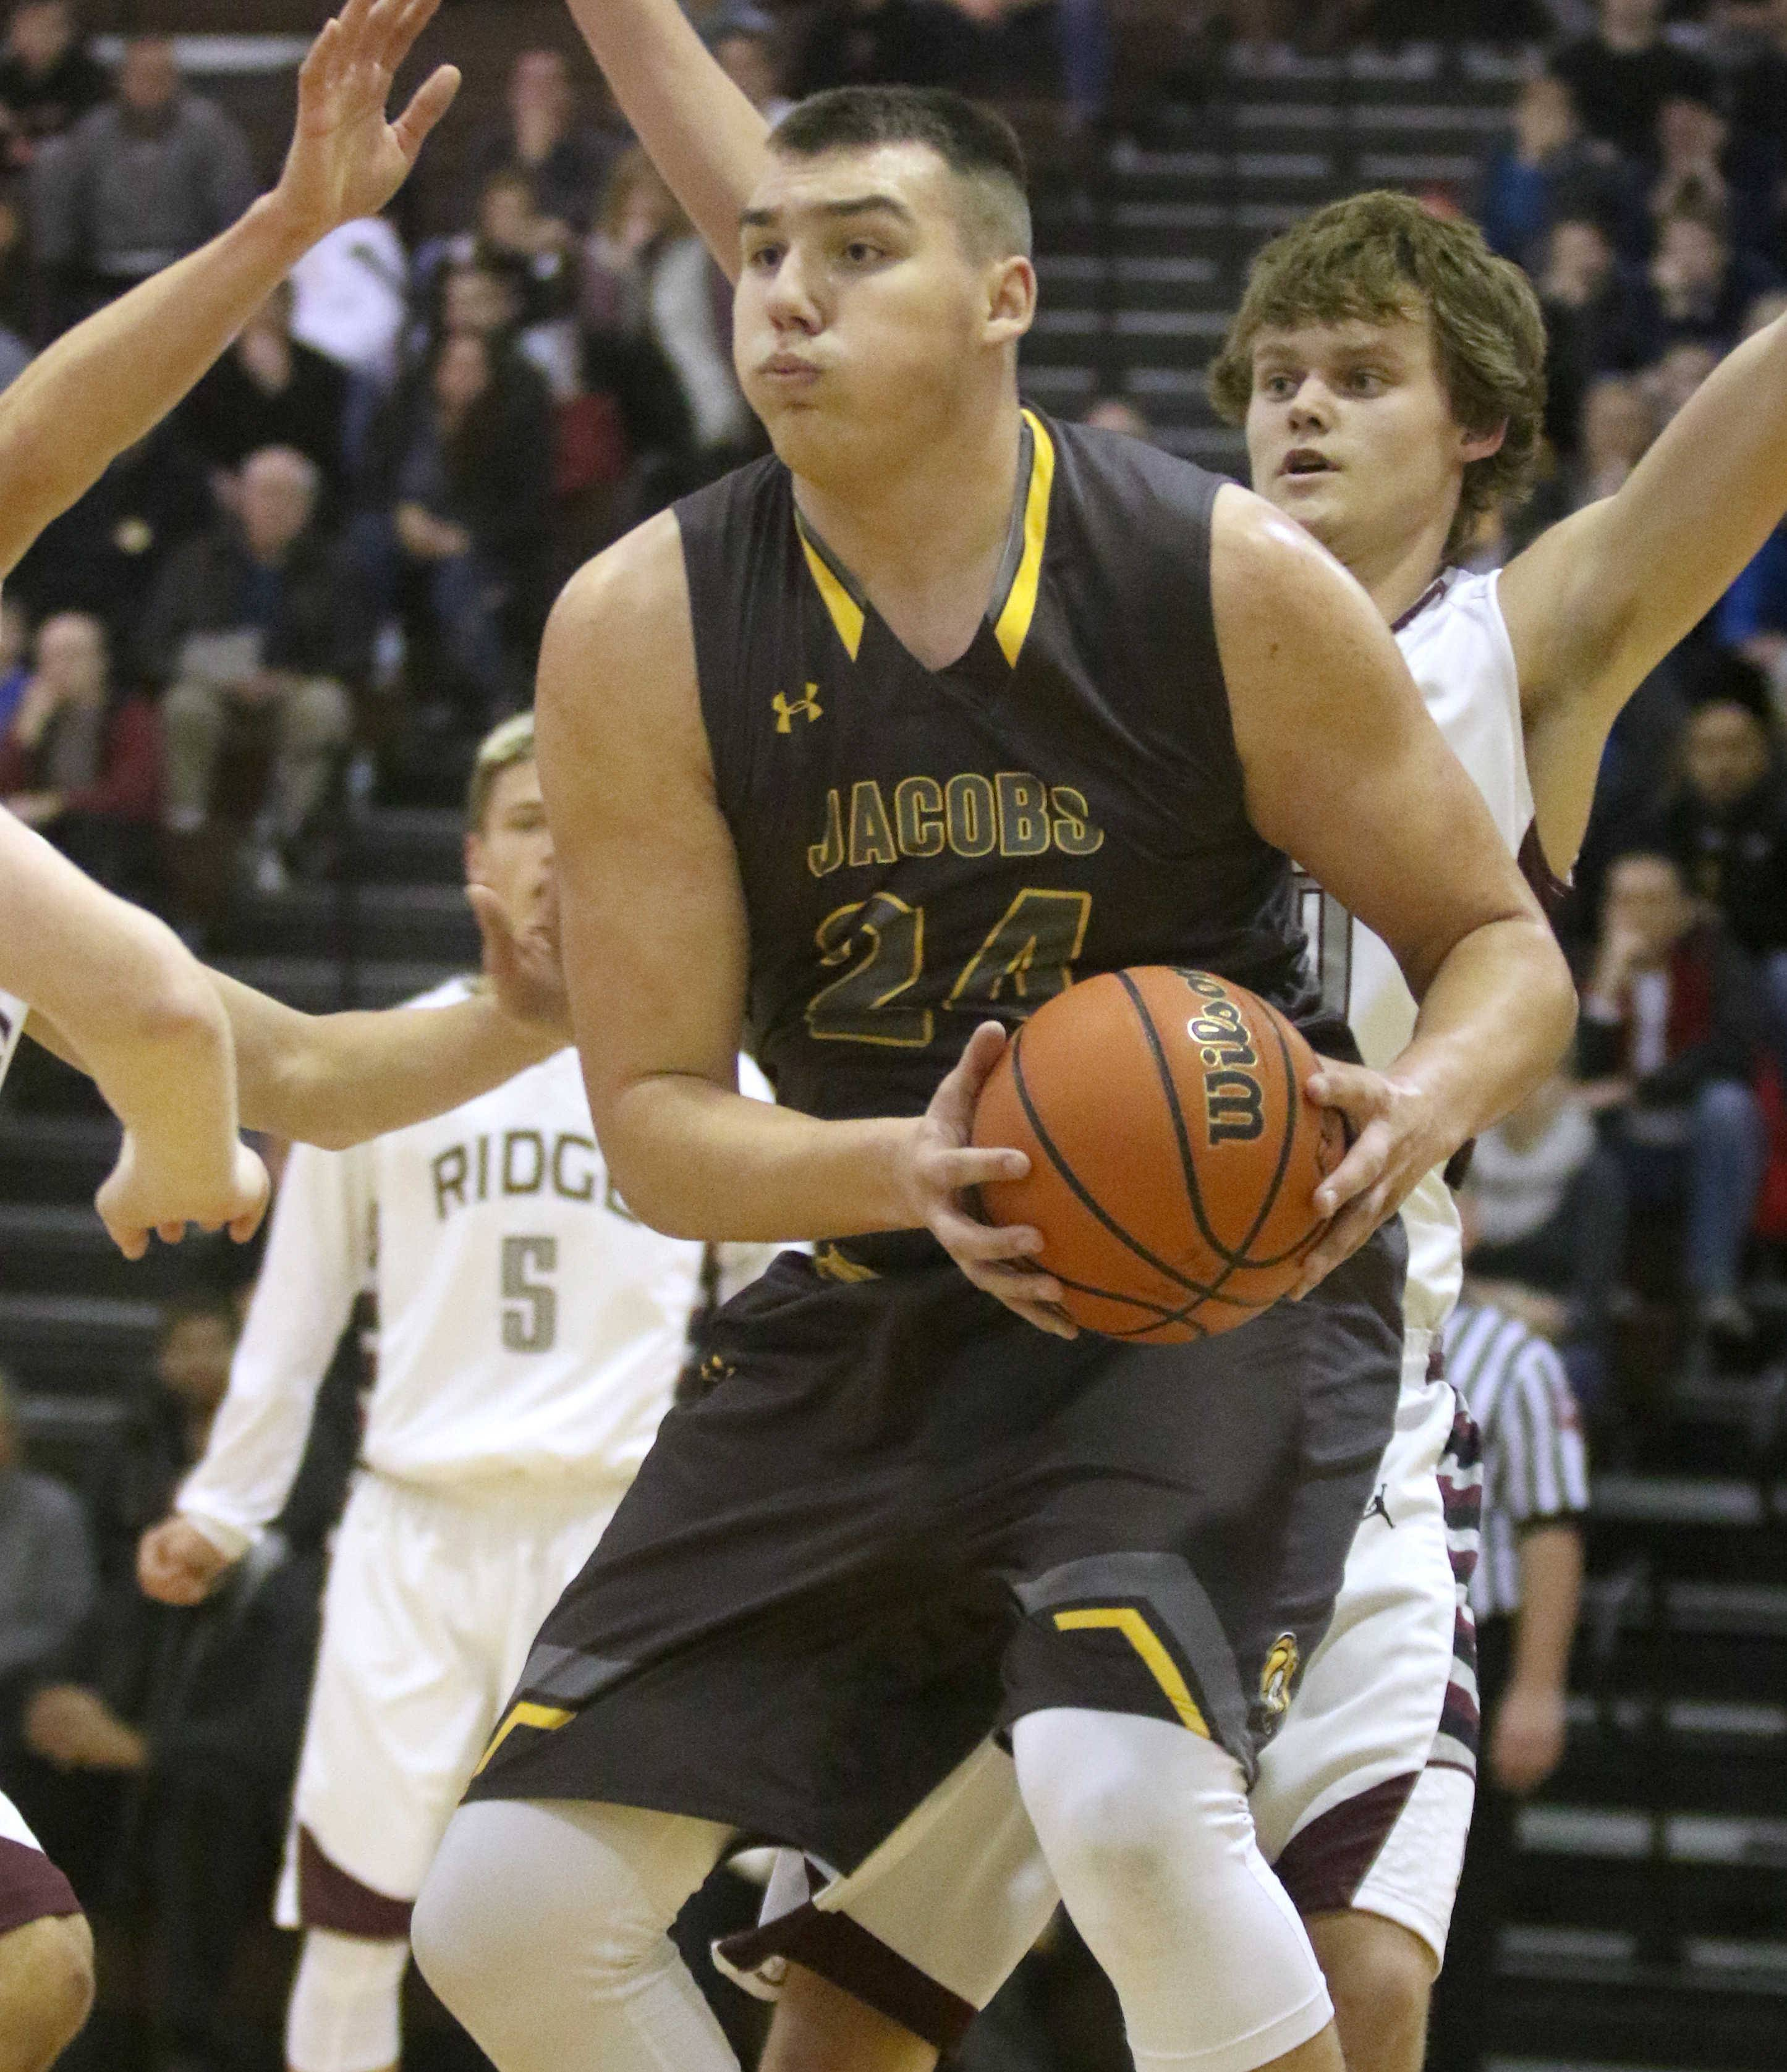 It's all brains, boards and basketball for Jacobs' Krutwig